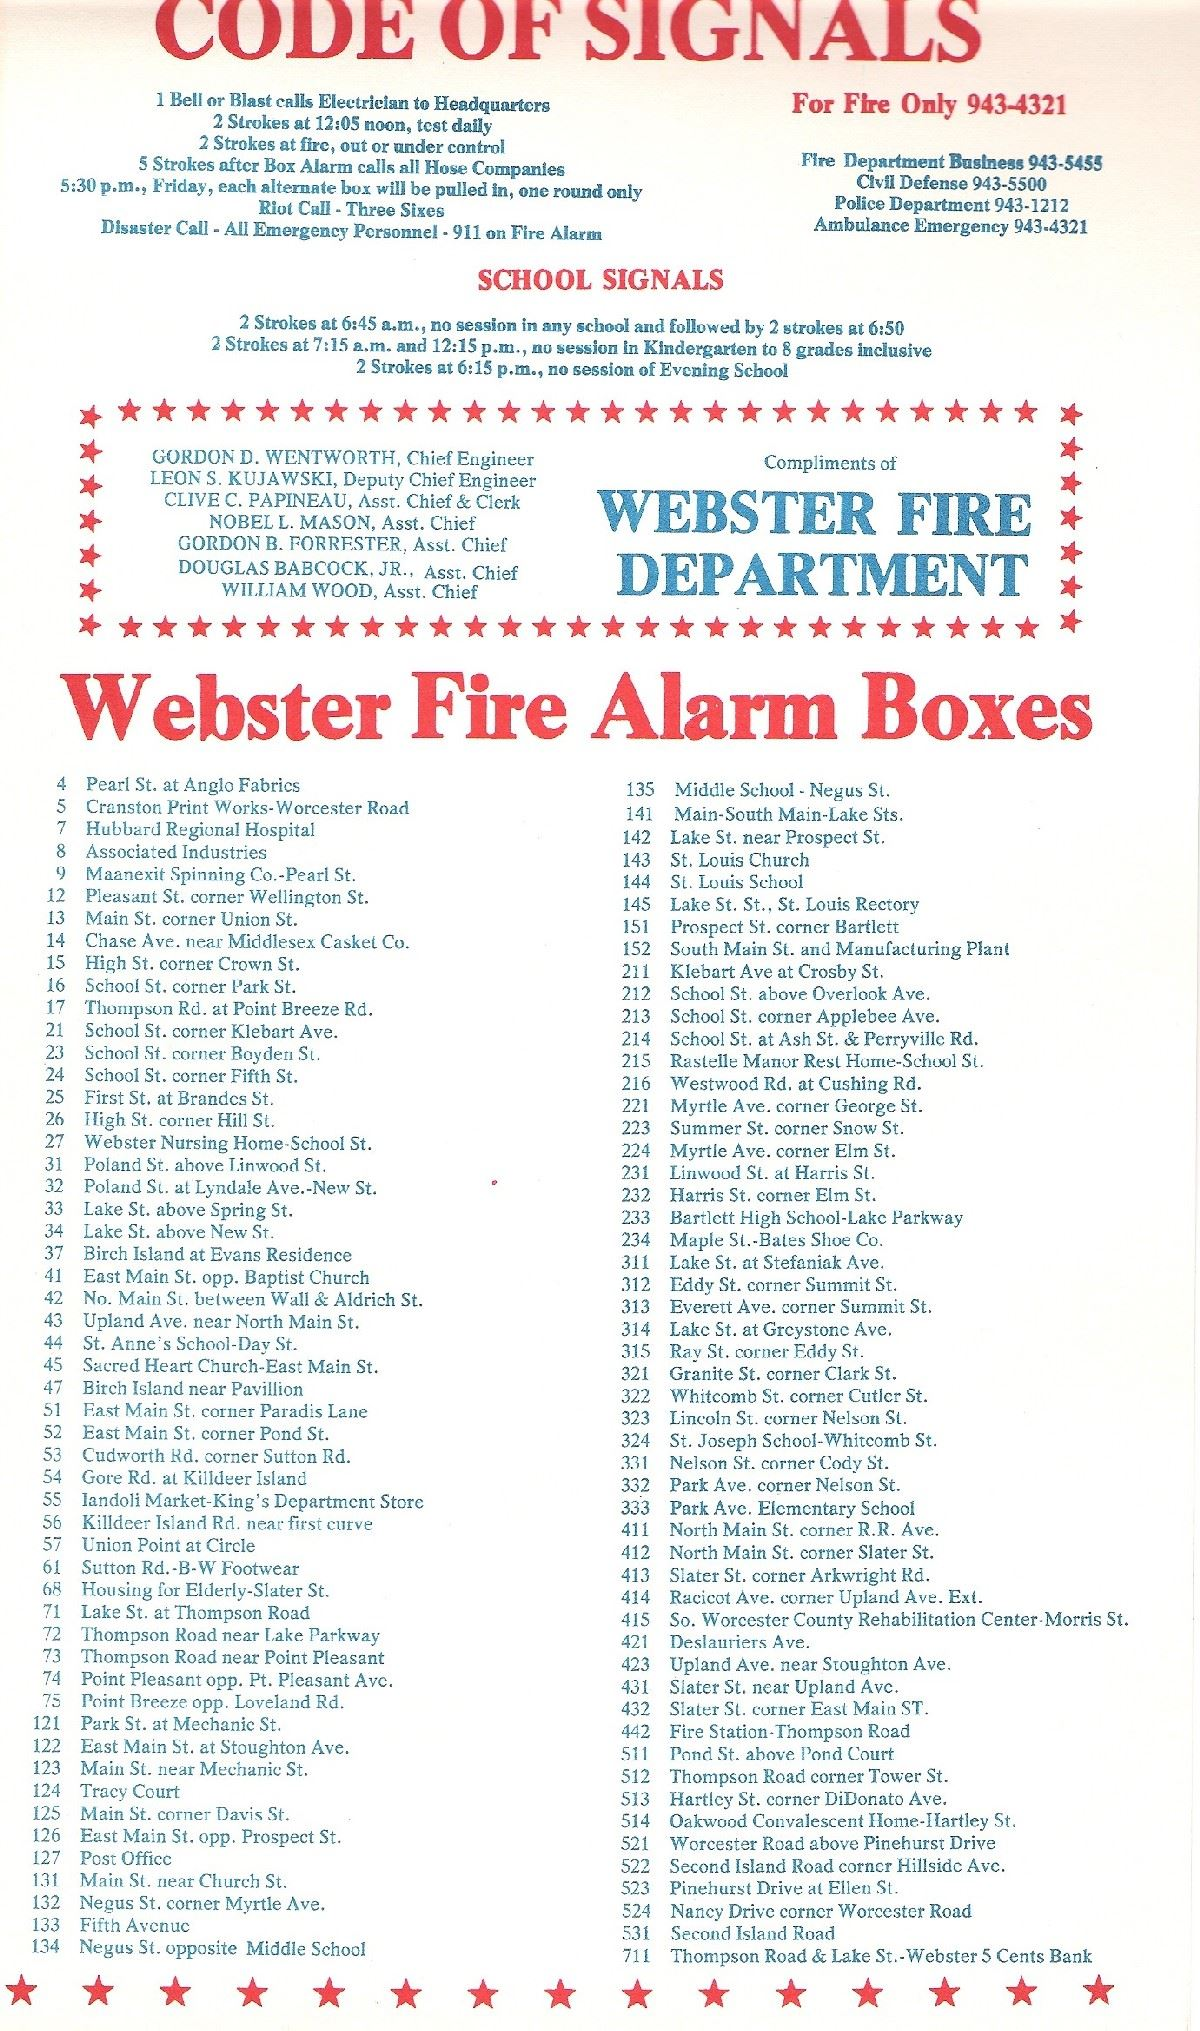 Circa 1980 Box Alarm List